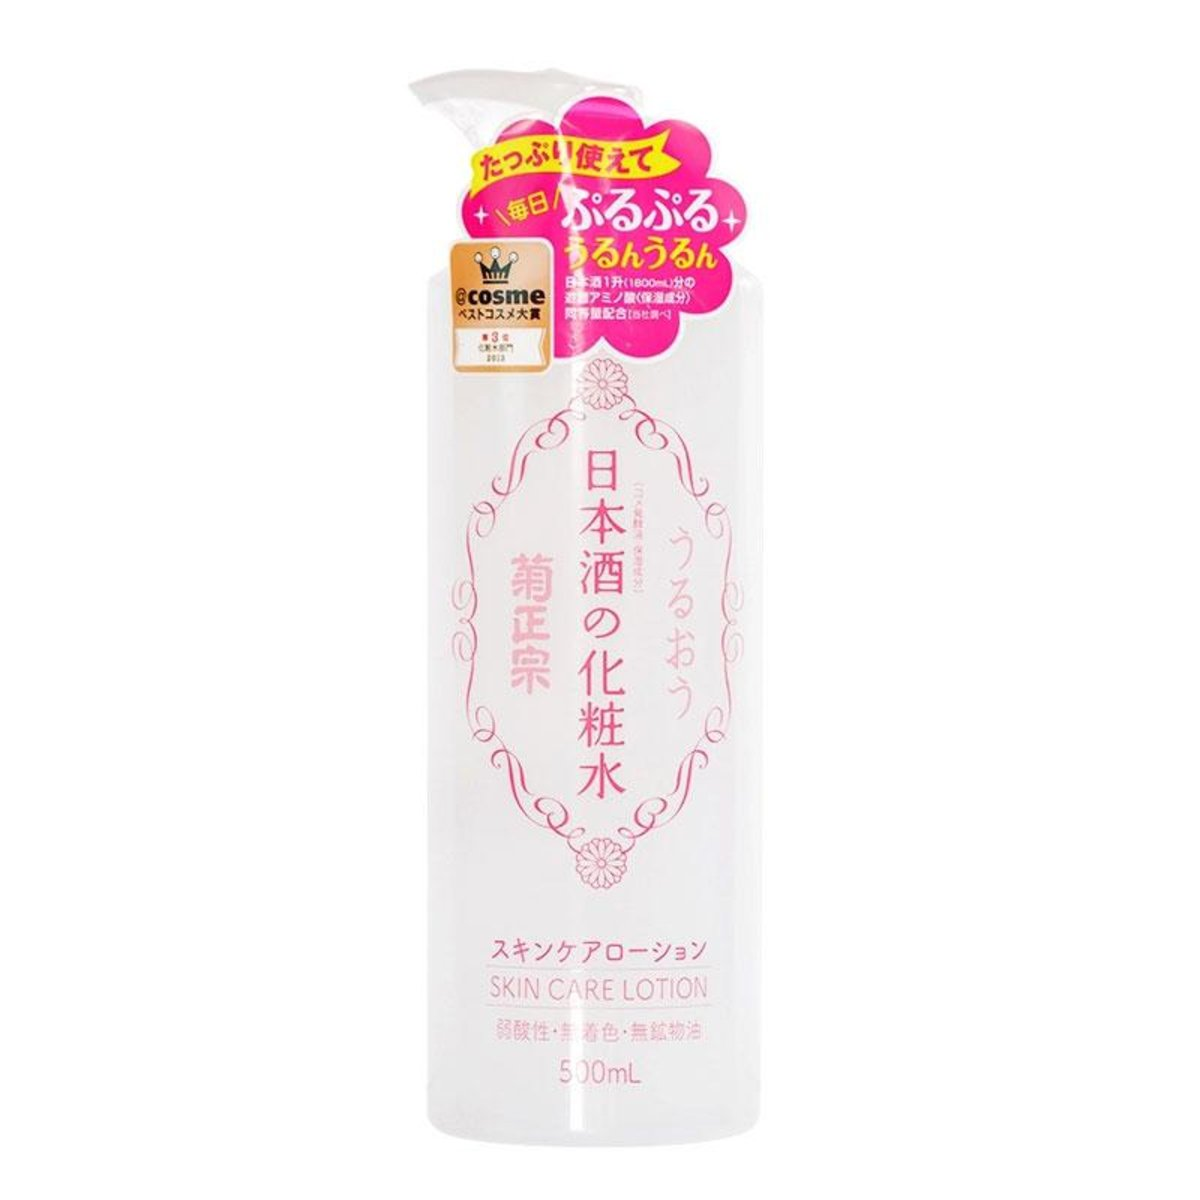 skincare lotion (sake lotion) 500ml (4971650800936)